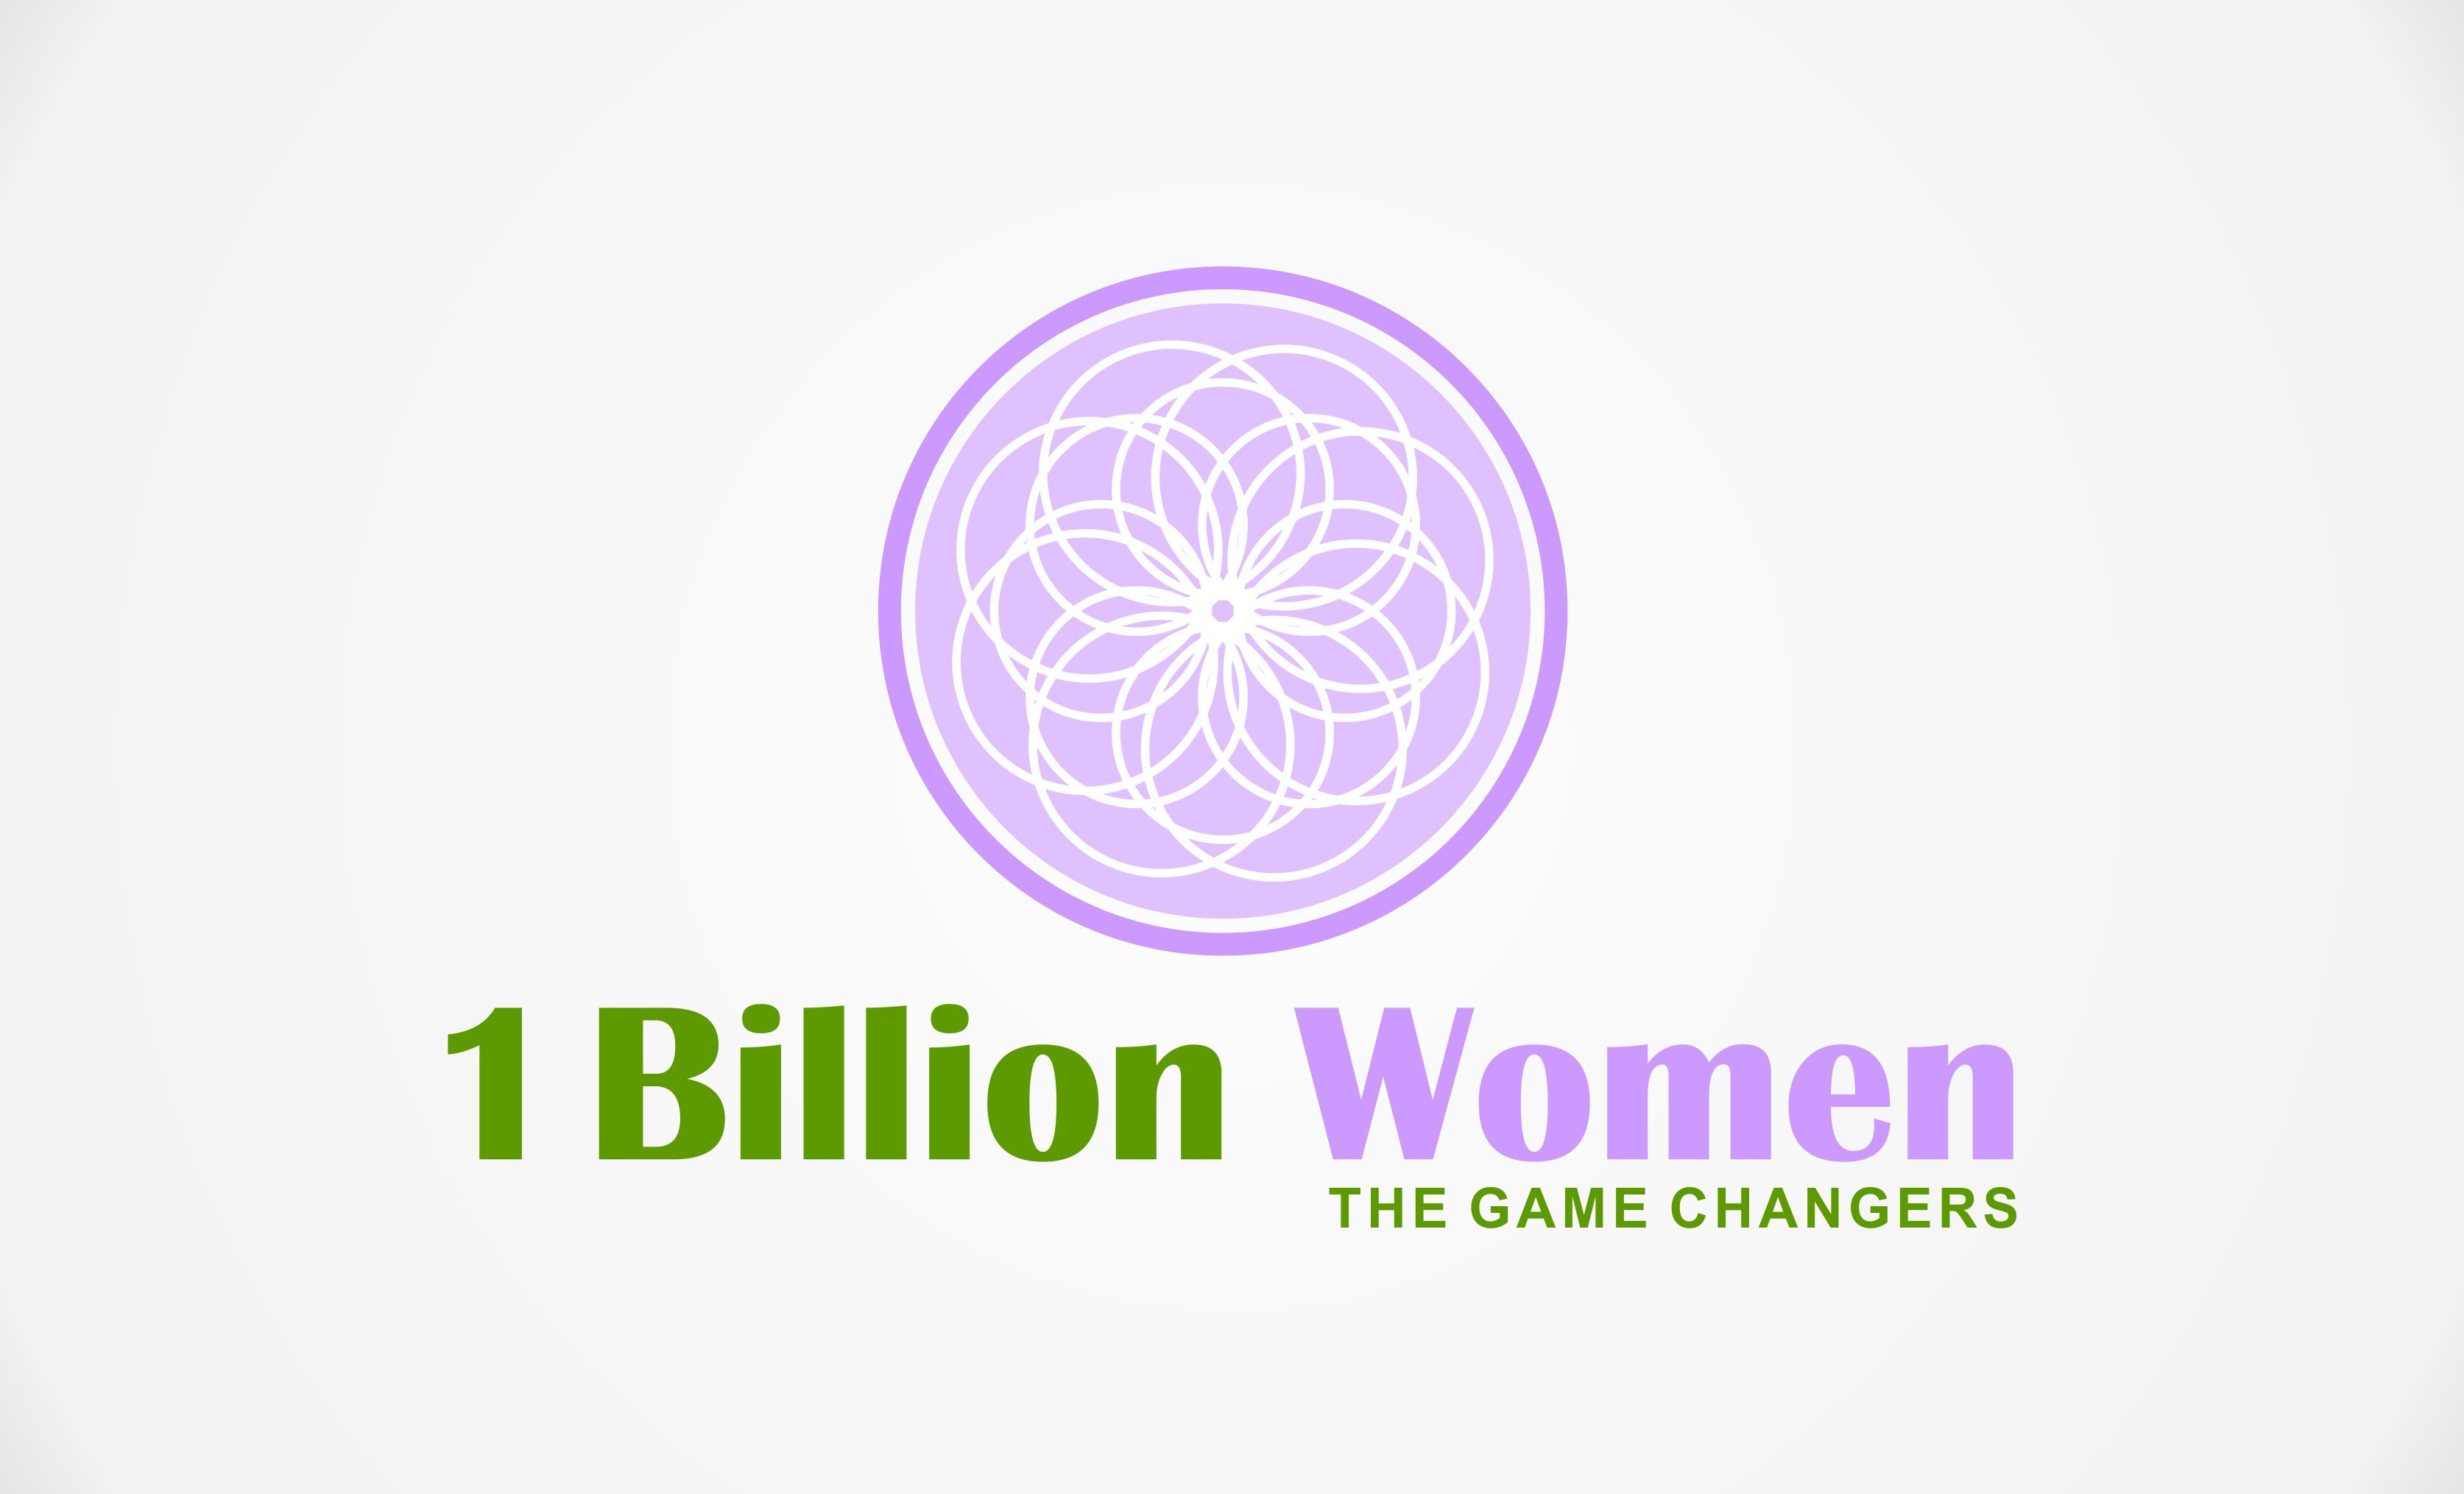 Logo Design by Crispin Jr Vasquez - Entry No. 126 in the Logo Design Contest Fun Logo Design for 1BillionWomen.